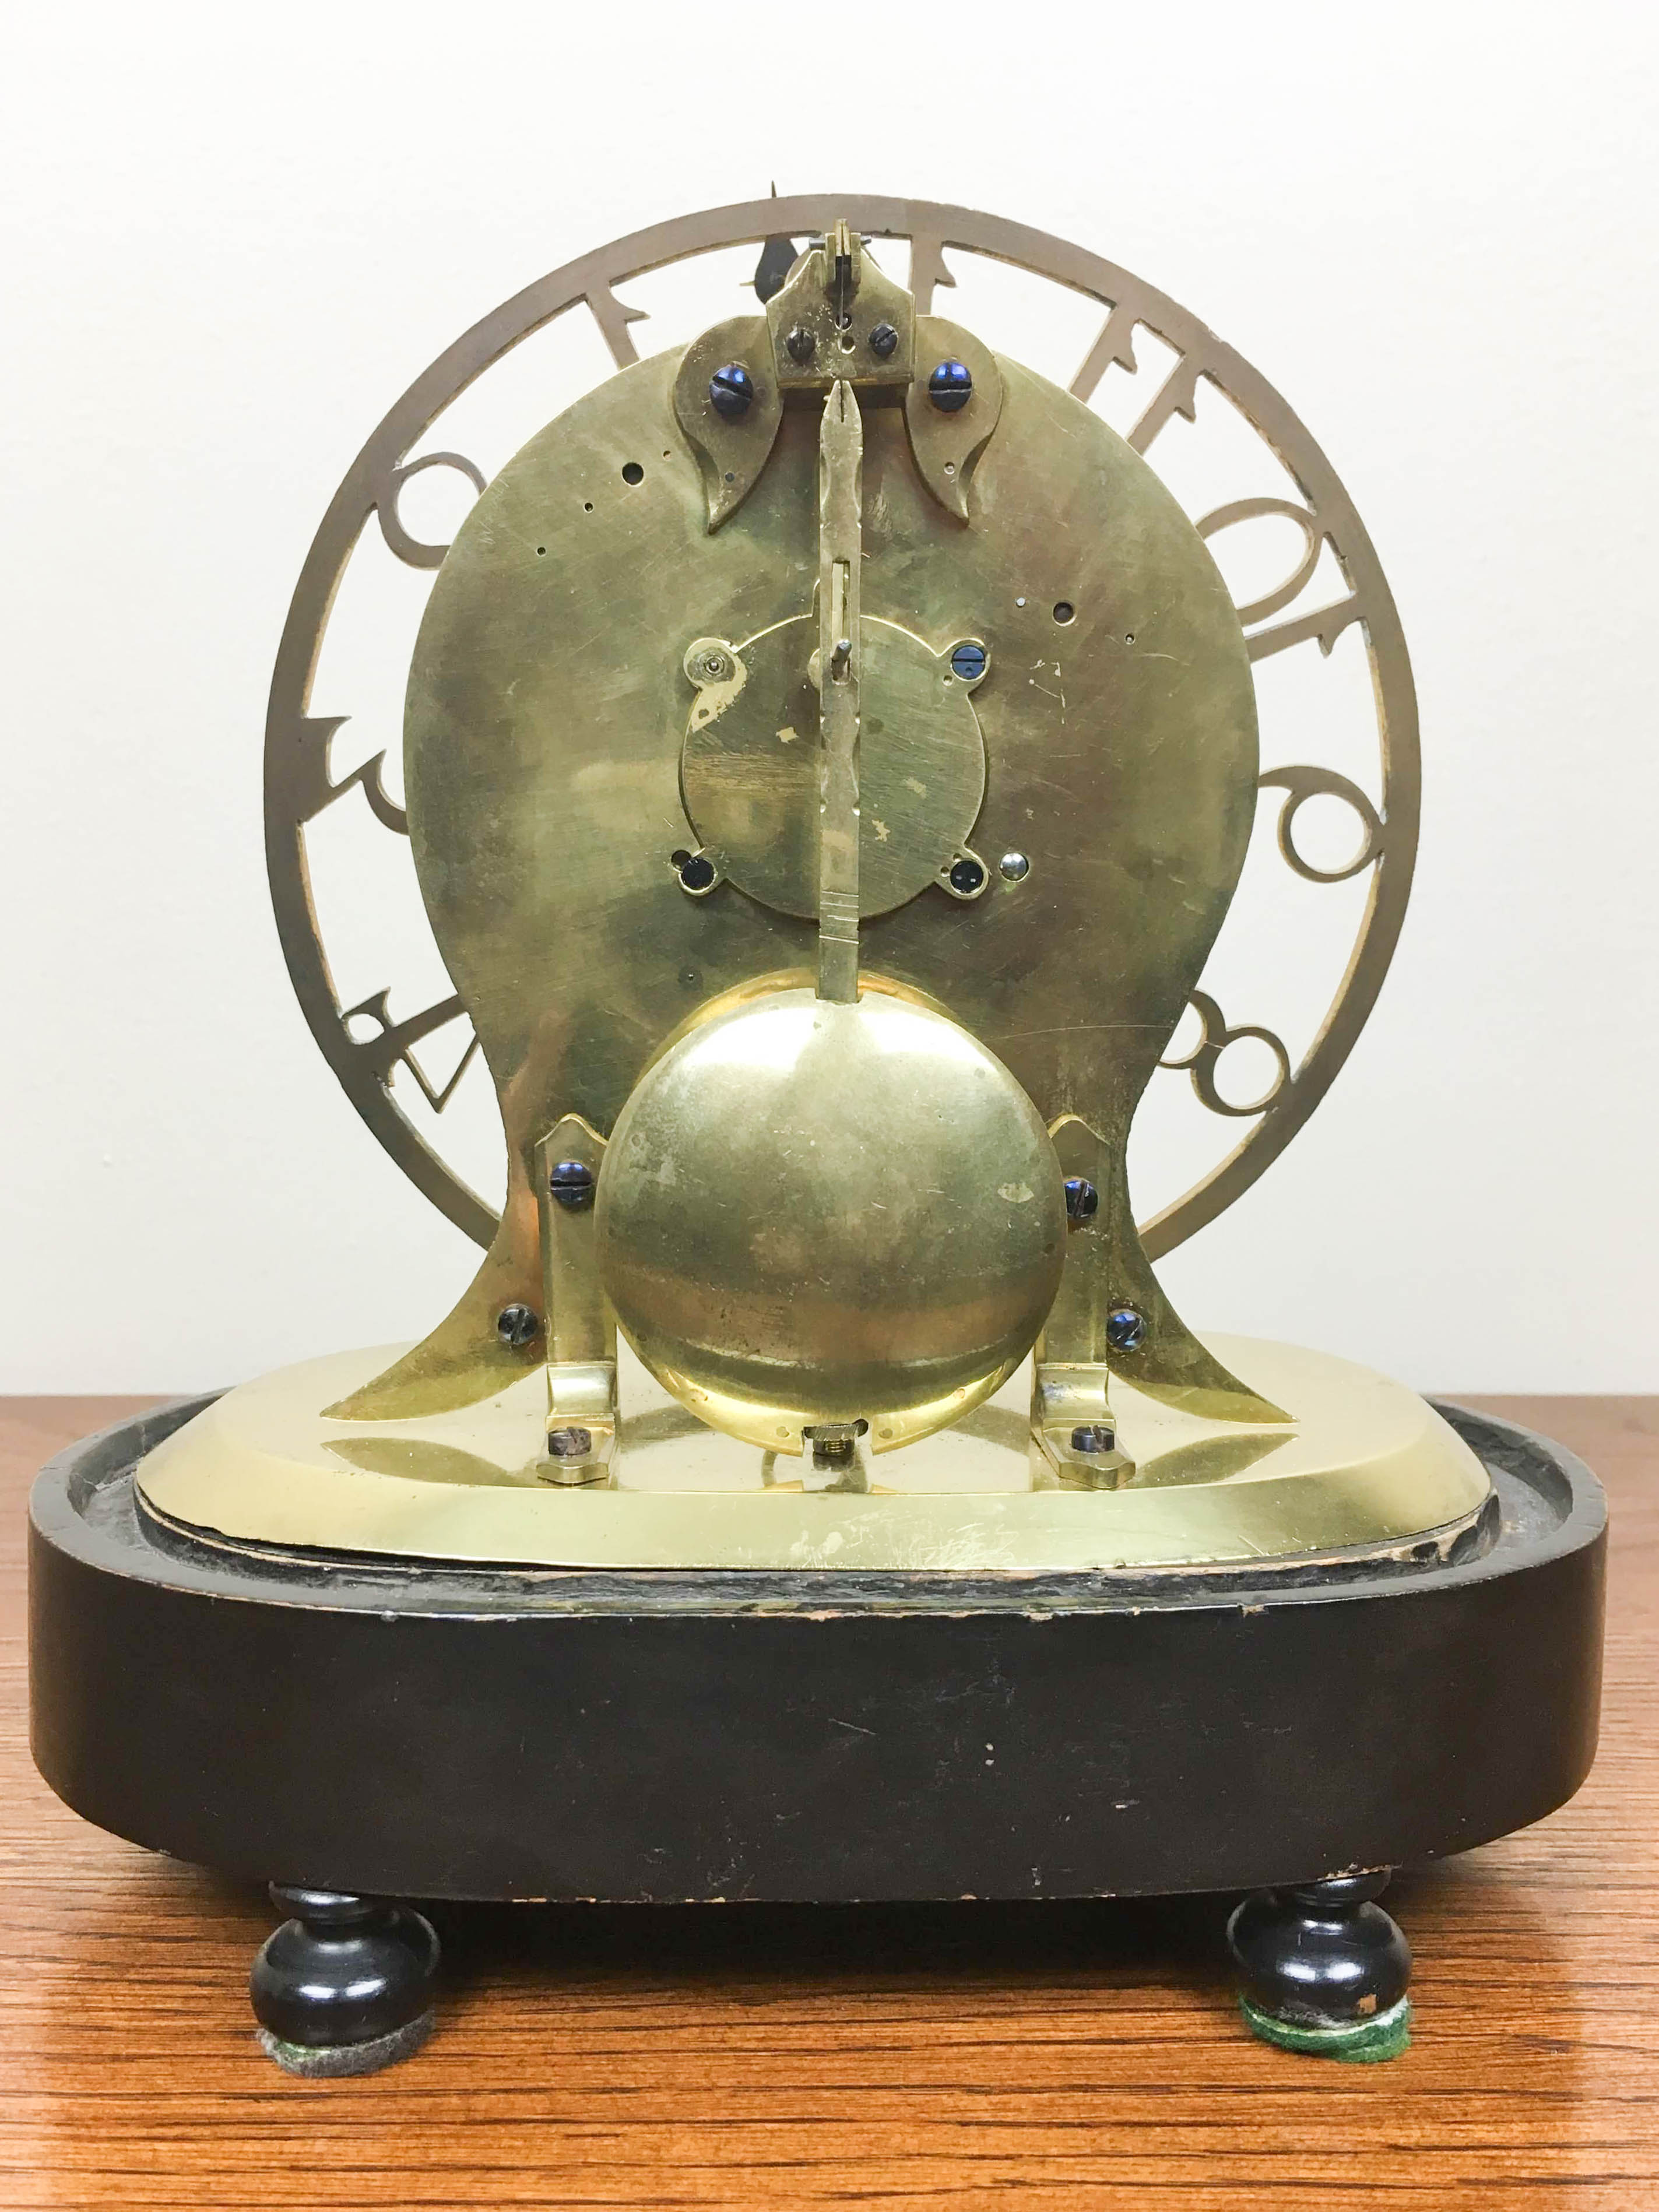 John Pace Carriage Clock, Bury, England